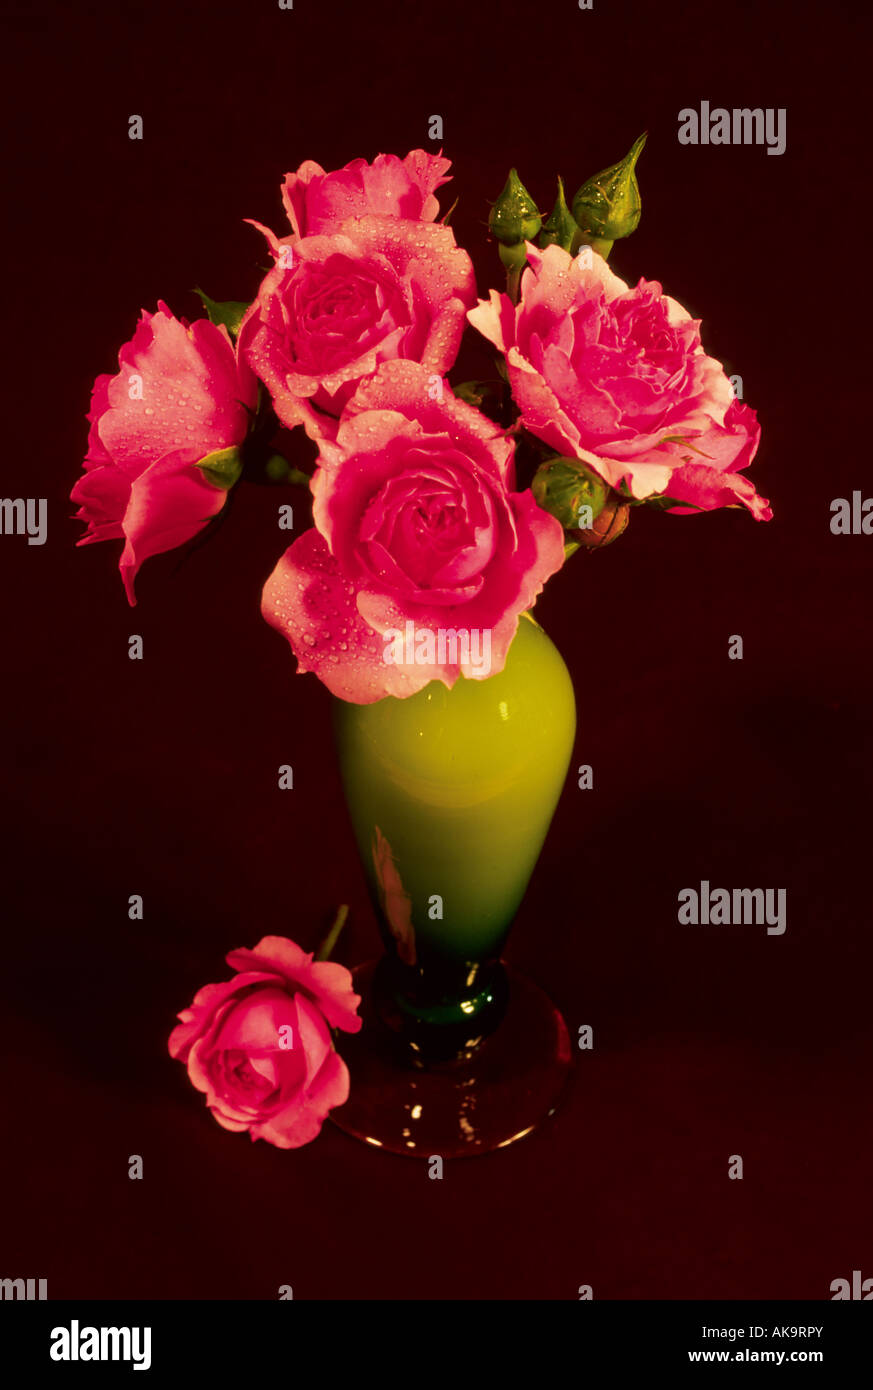 Red Roses Bouquet In Vase Flower Flowers Botanical Floral Red Pink